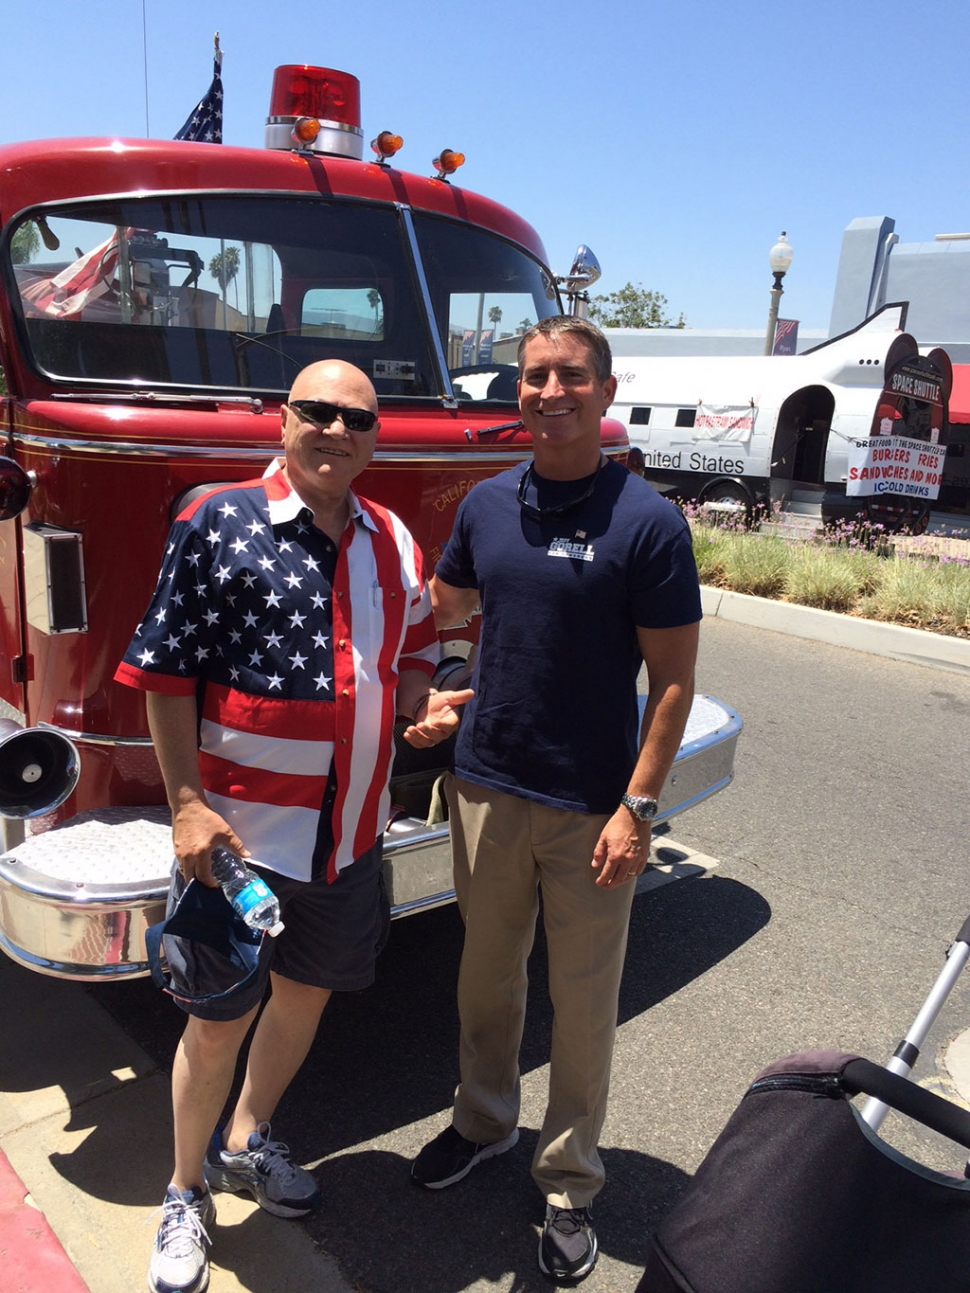 Assemblyman Jeff Gorell, right, posed for pictures with and greeted Fillmore residents at the 4th of July festival Friday. Gorell is running for Congress in California's 26th Congressional District. From Camarillo, Gorell was a criminal prosecutor, a military veteran, and university educator.